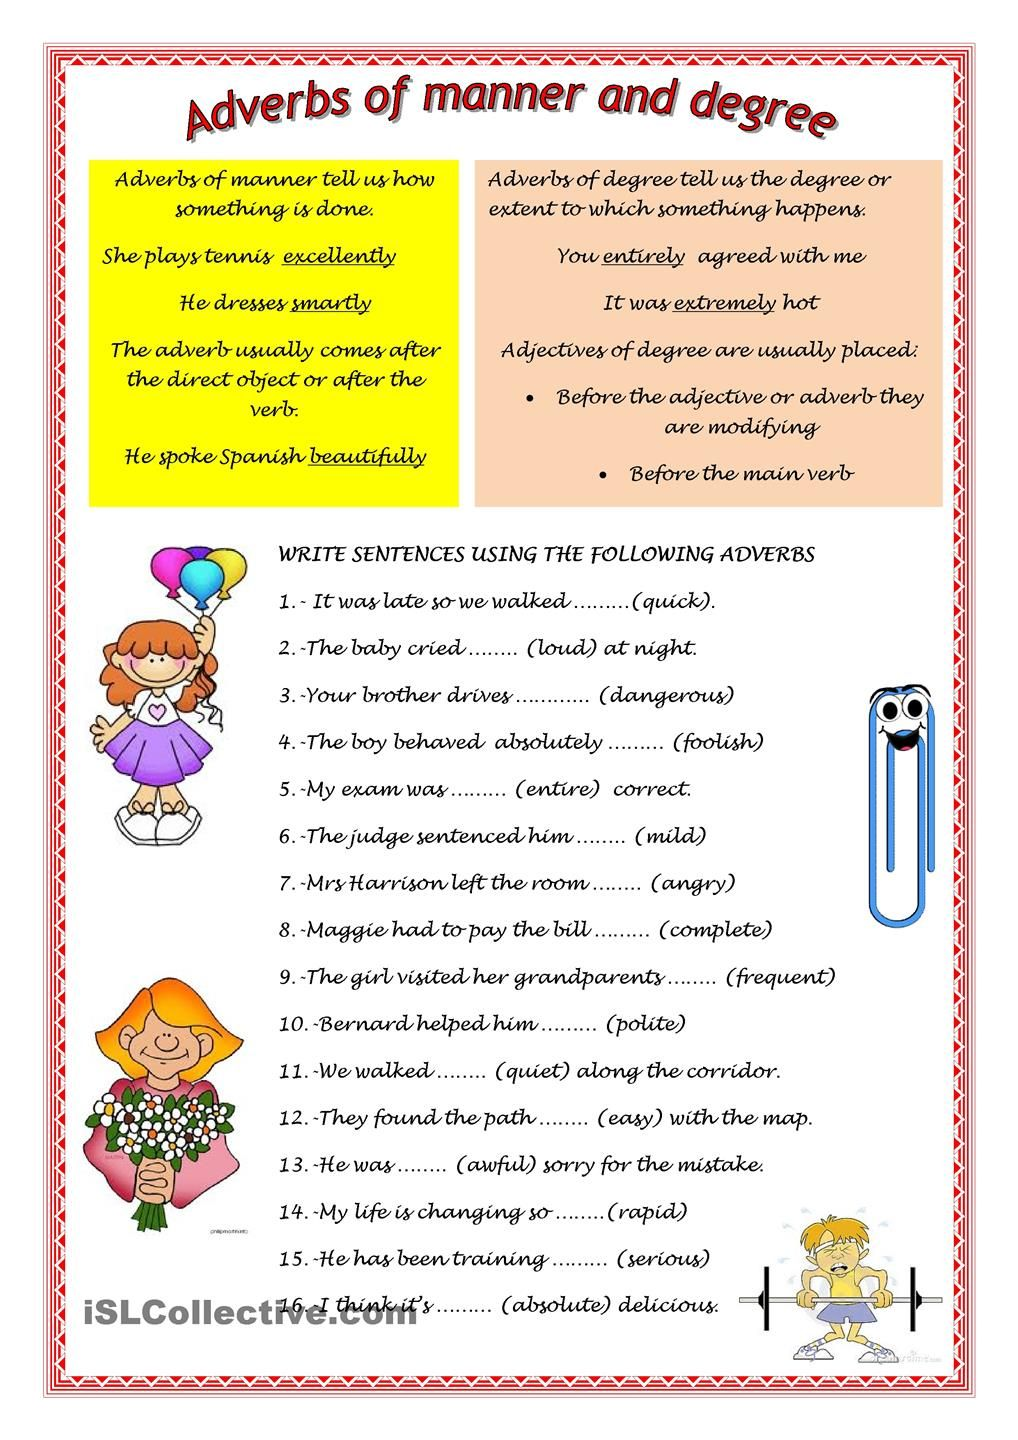 adverbs with images to share Google Search Adverbs